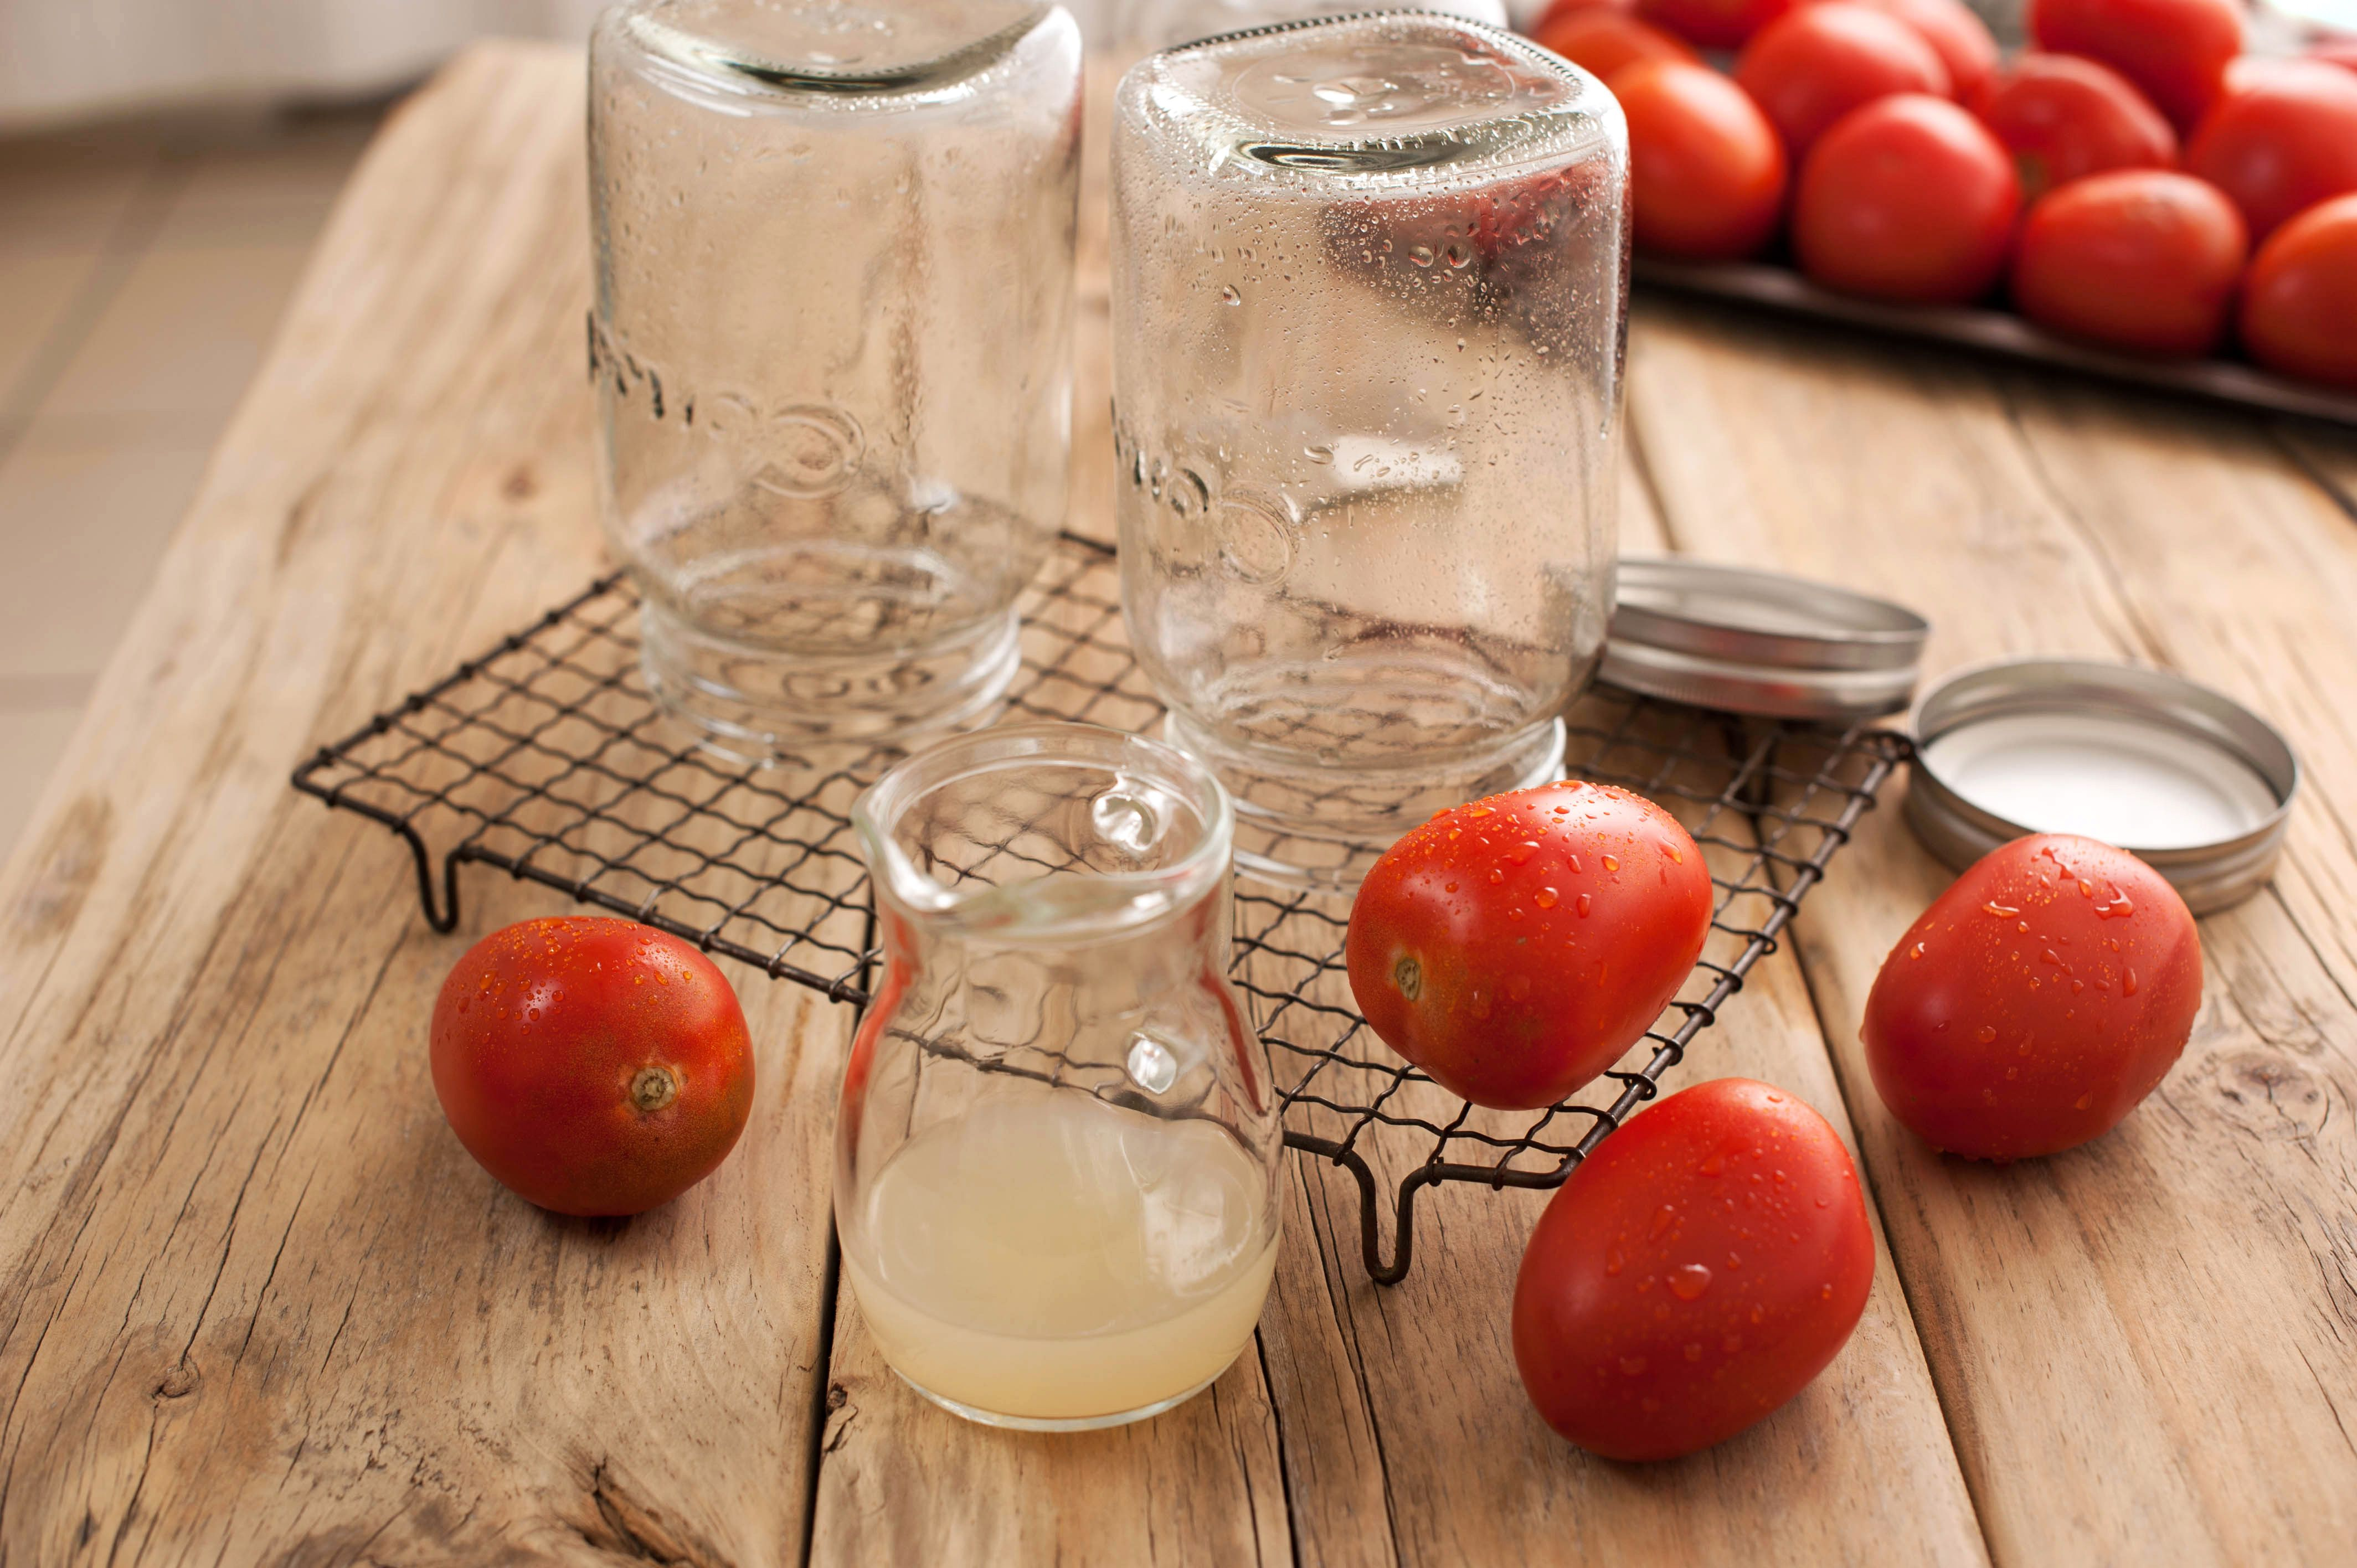 Canning whole tomatoes ingredients and tools